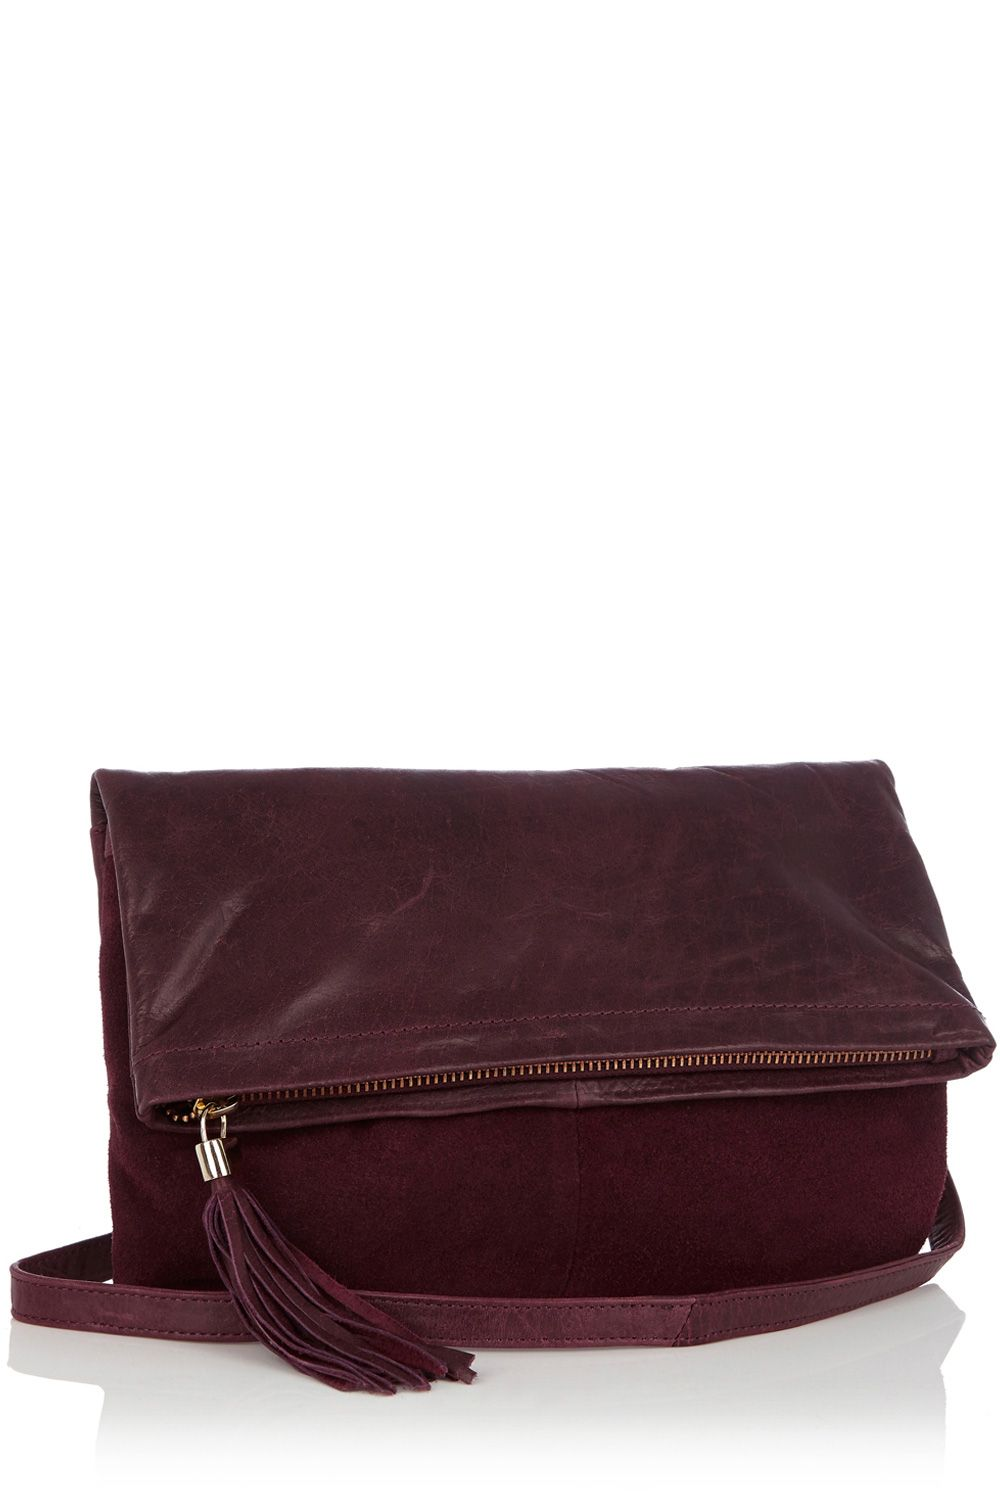 Clove Leather Clutch Cross Body